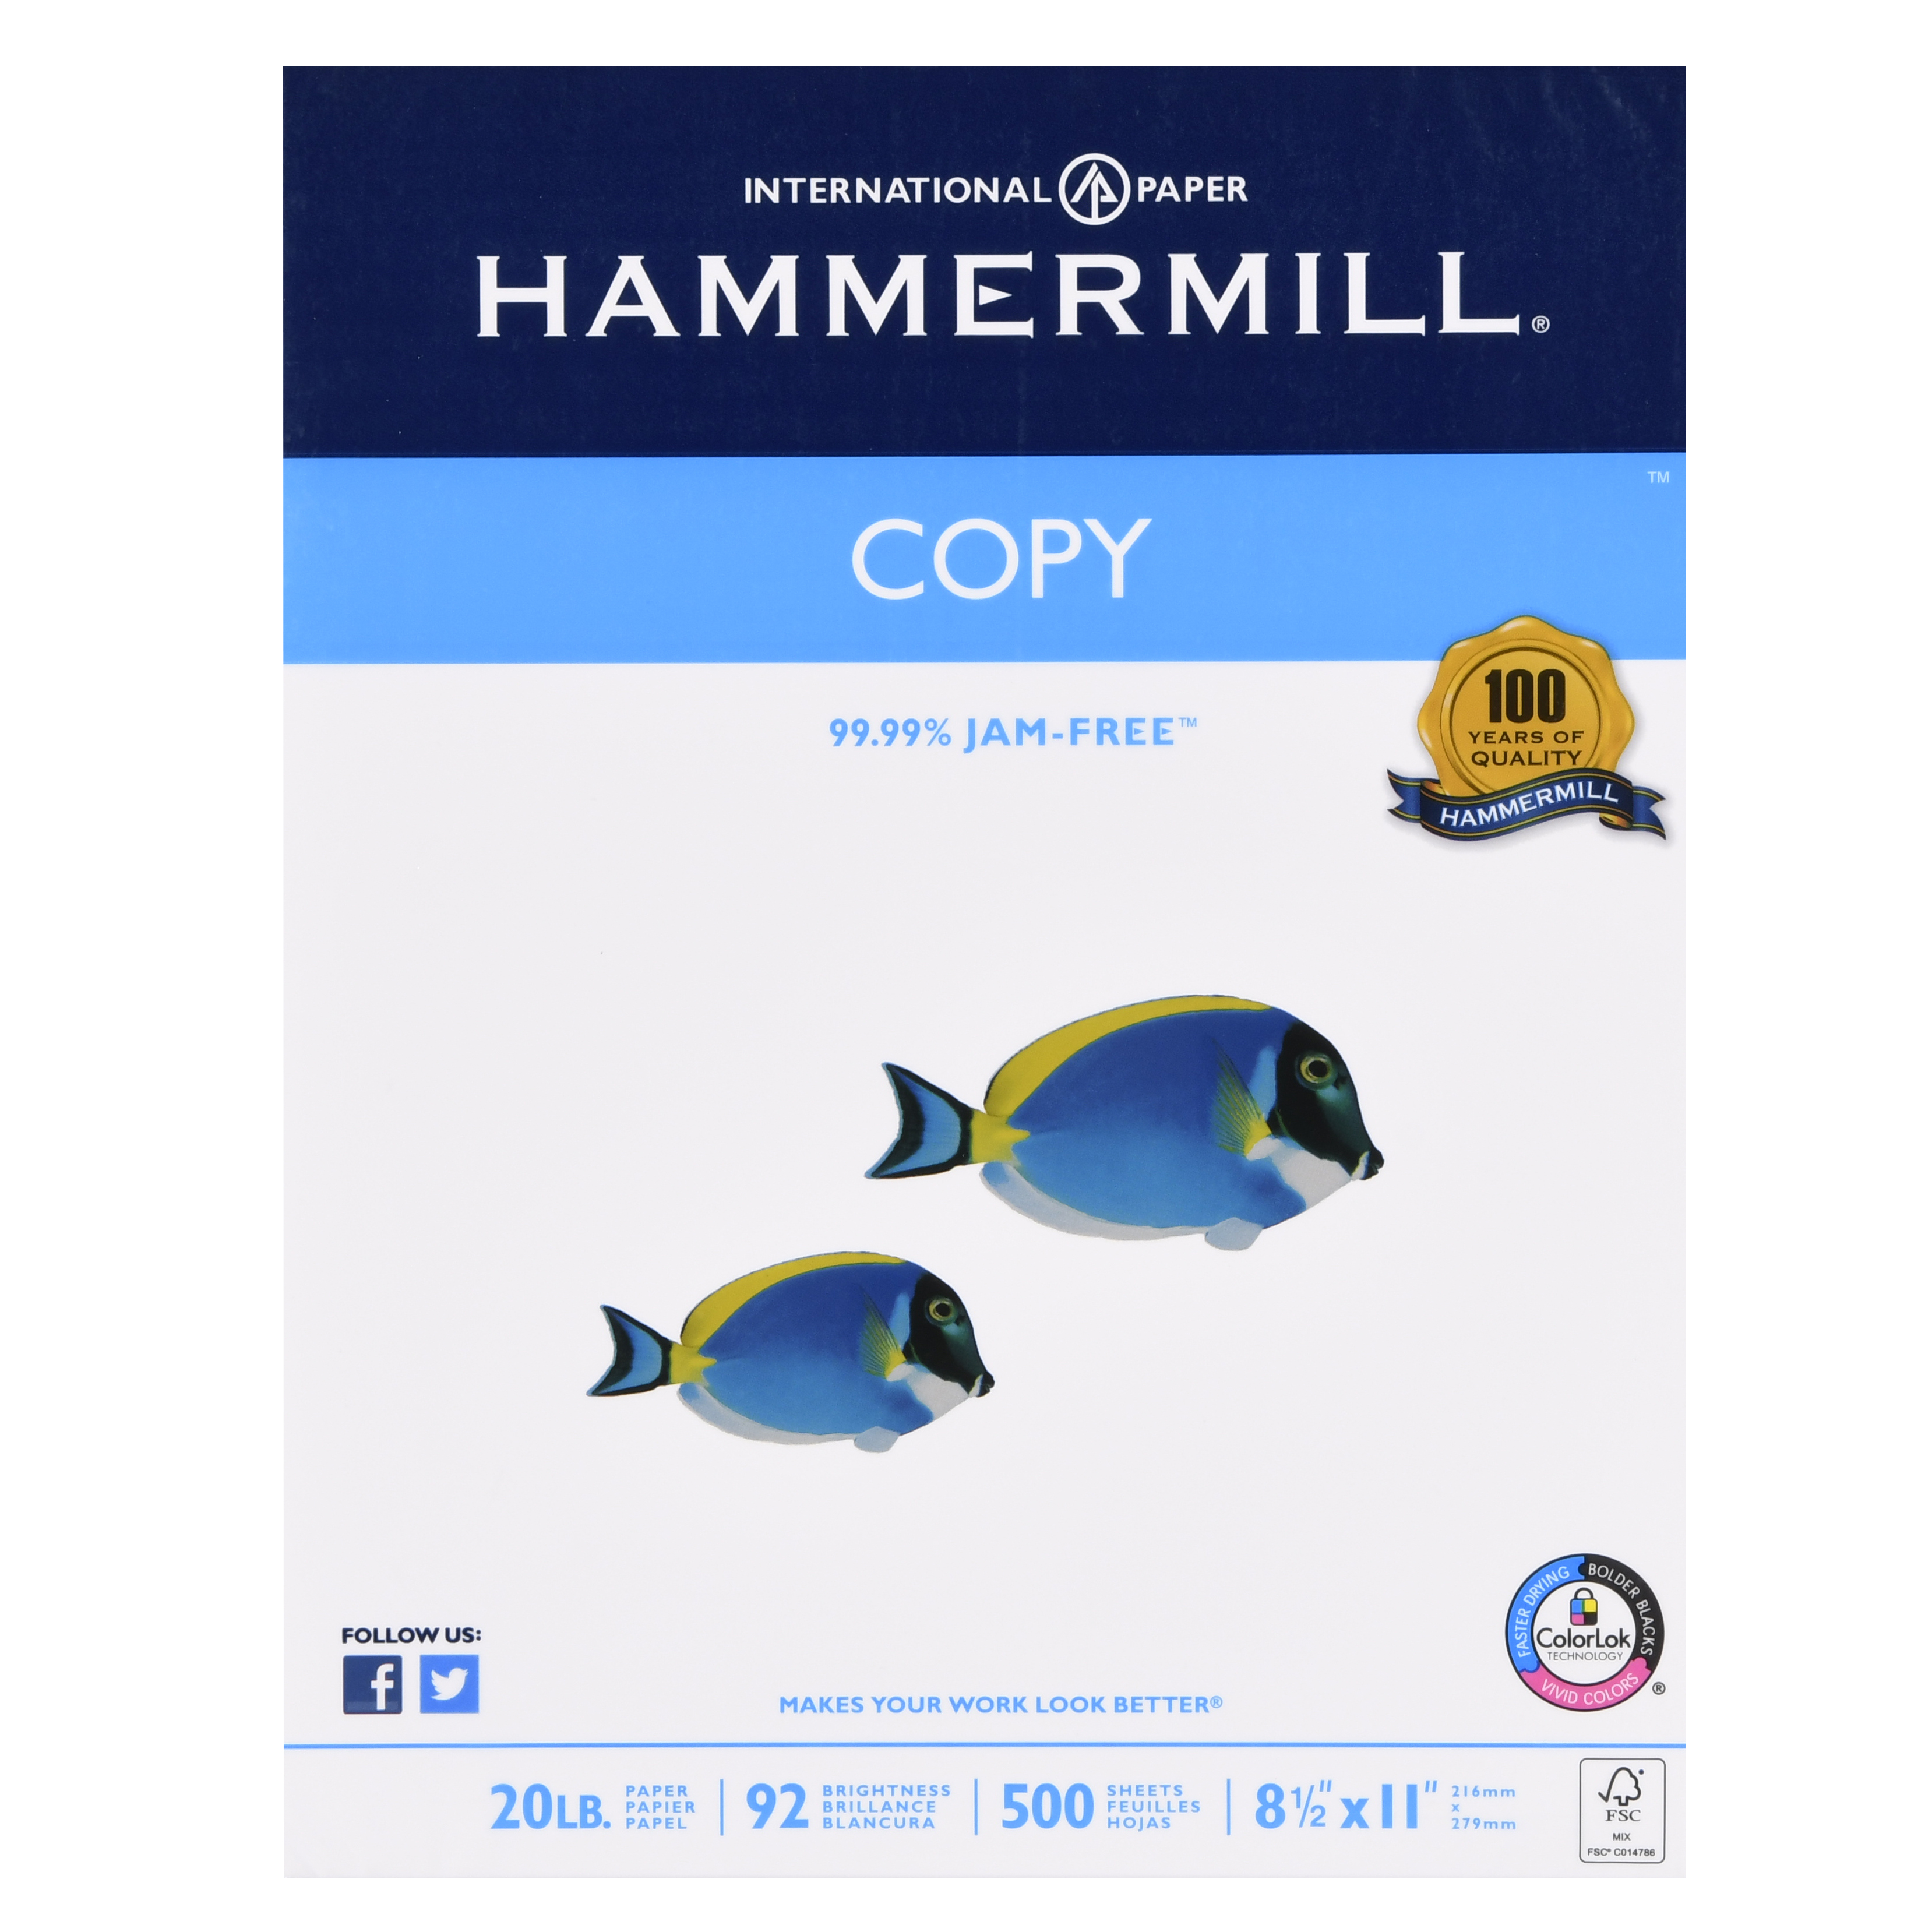 Hammermill Copy Paper, 8.5x11In, 20 lb, 92 Bright, 1 Ream, 500 Sheets